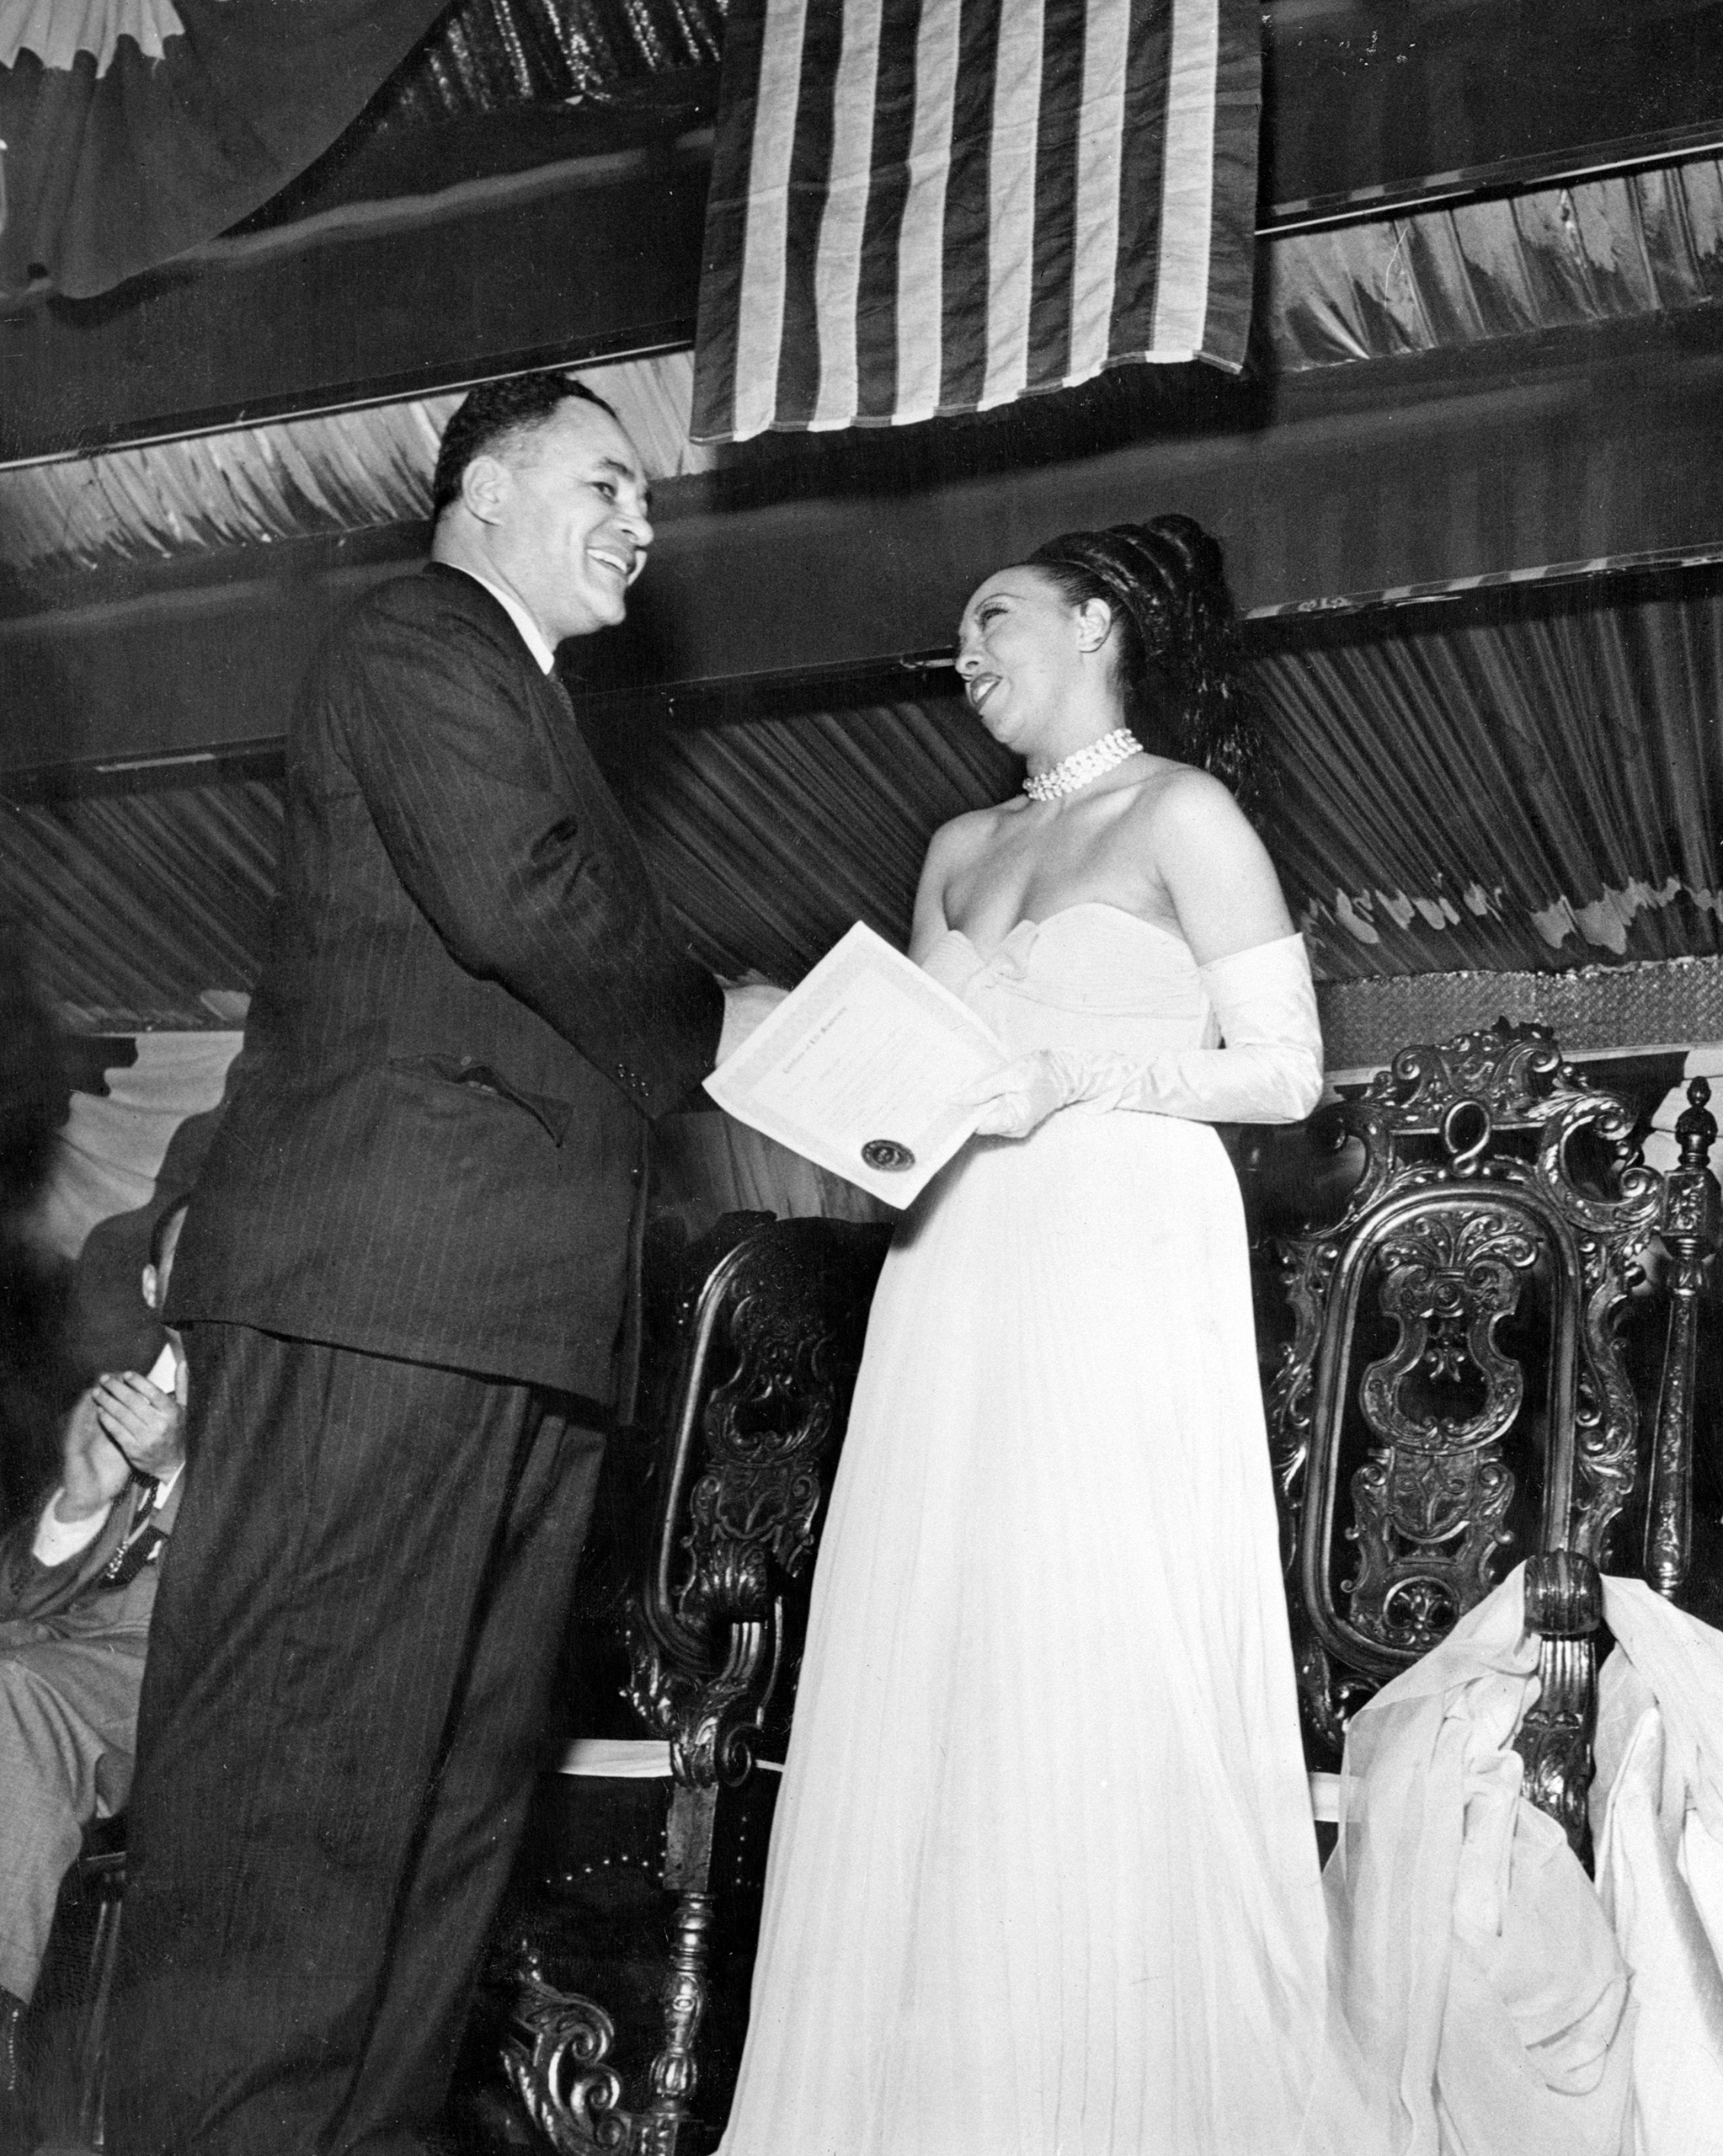 Dr. Ralph Bunche, former Palestine mediator and now director of United Nations trusteeship, serves as honorary chairman of  Jo Baker Day  honoring the well-known singer and entertainer. Dr. Bunche is shown presenting Miss Baker with Life Membership in the New York Branch of the NAACP, the sponsoring organization. 1950.